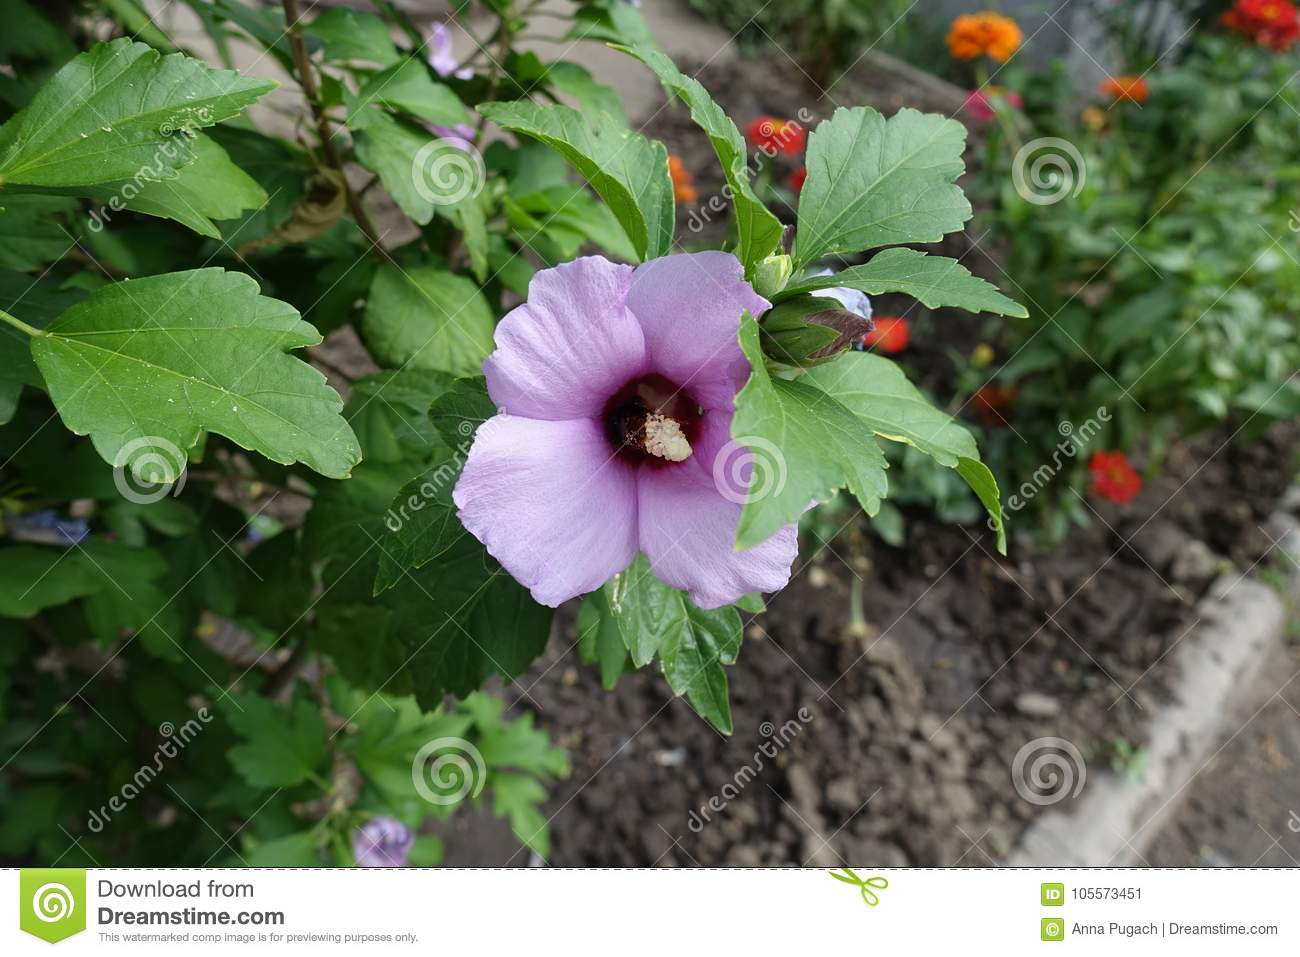 Closed bud and flower of hibiscus stock image image of botany download closed bud and flower of hibiscus stock image image of botany beautiful izmirmasajfo